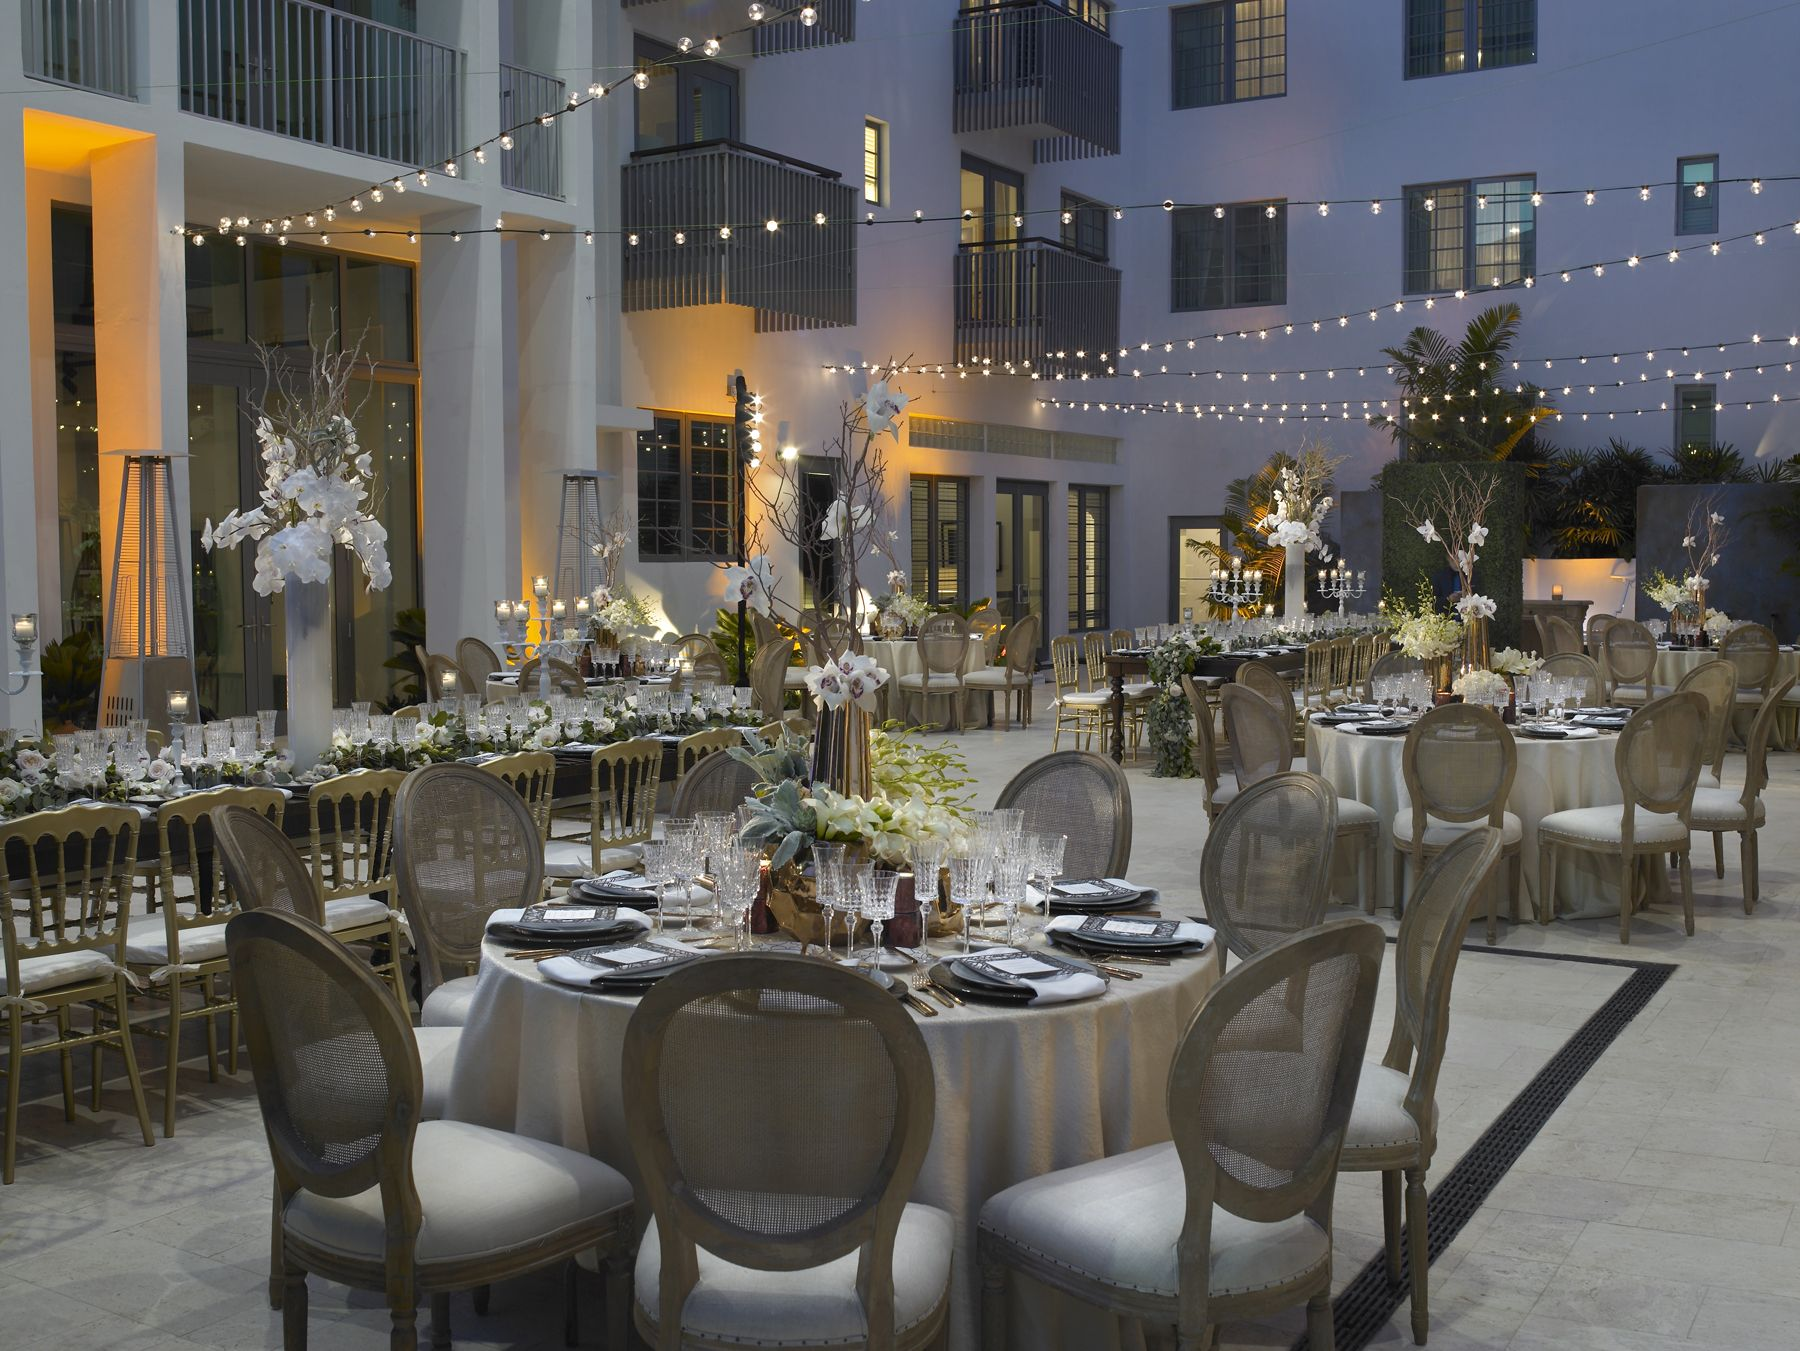 Wedding Reception In The Atrium Of The Betsy Hotel In South Beach